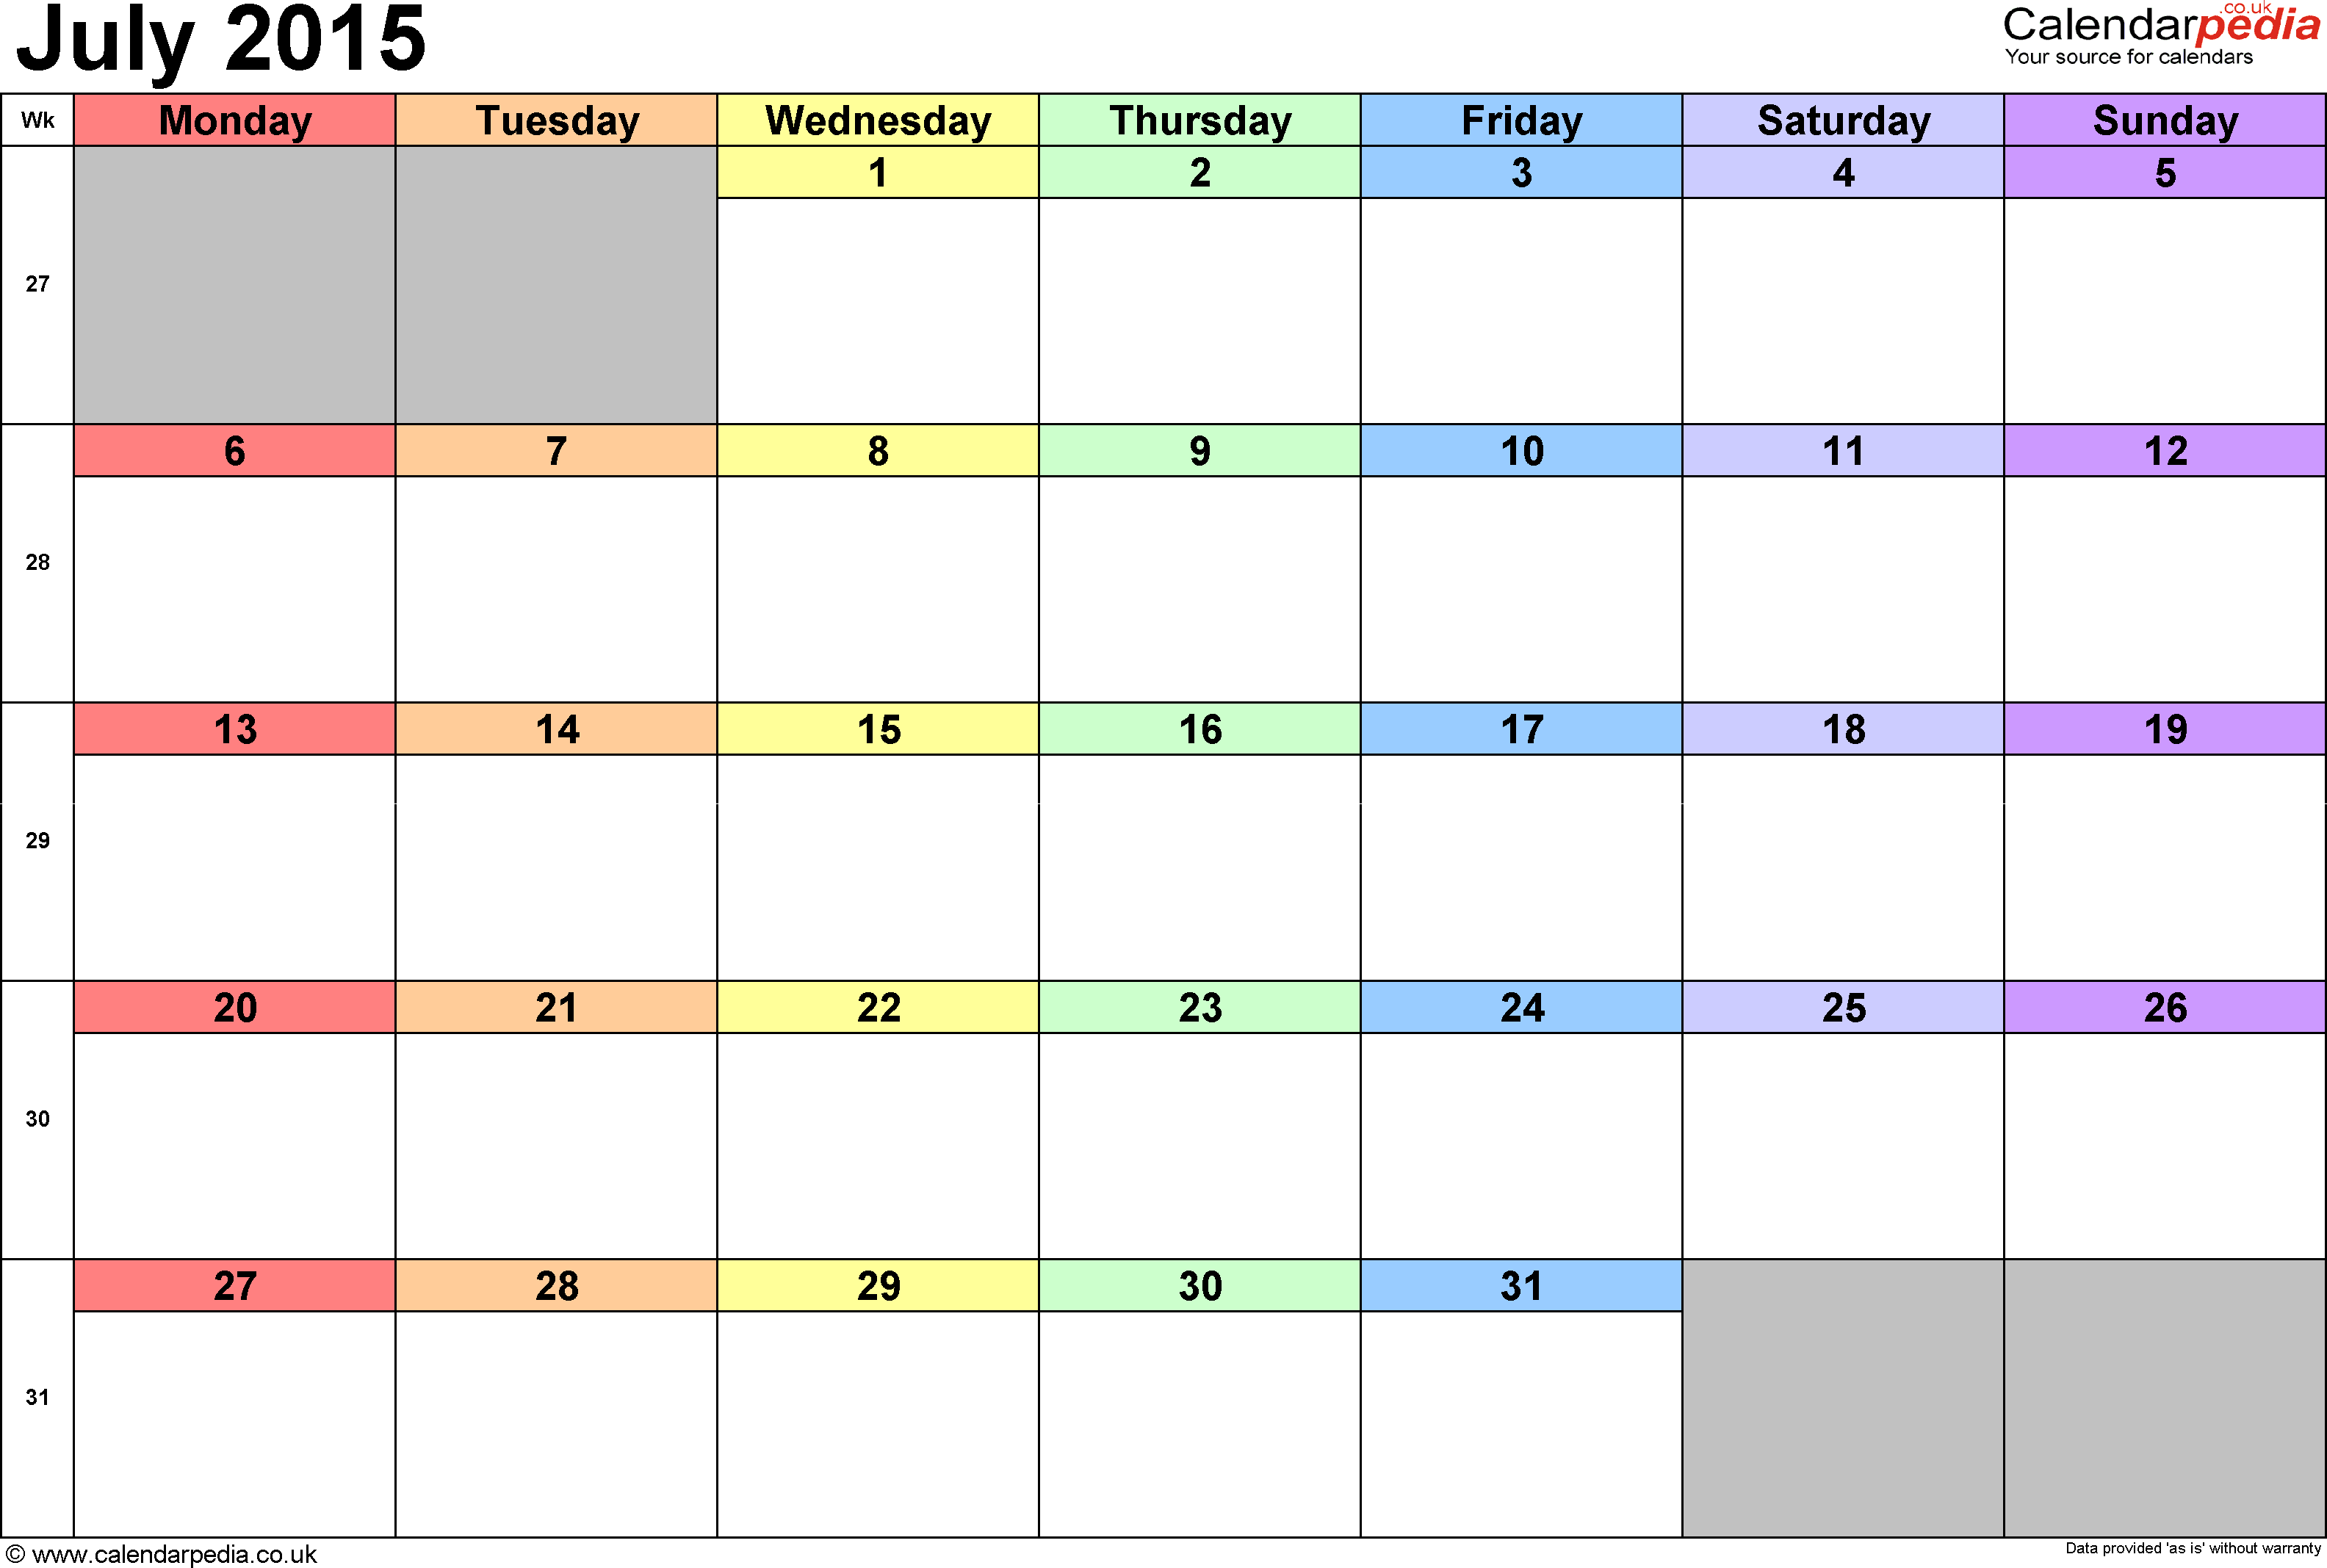 Calendar July 2015, landscape orientation, 1 page, with UK bank holidays and week numbers